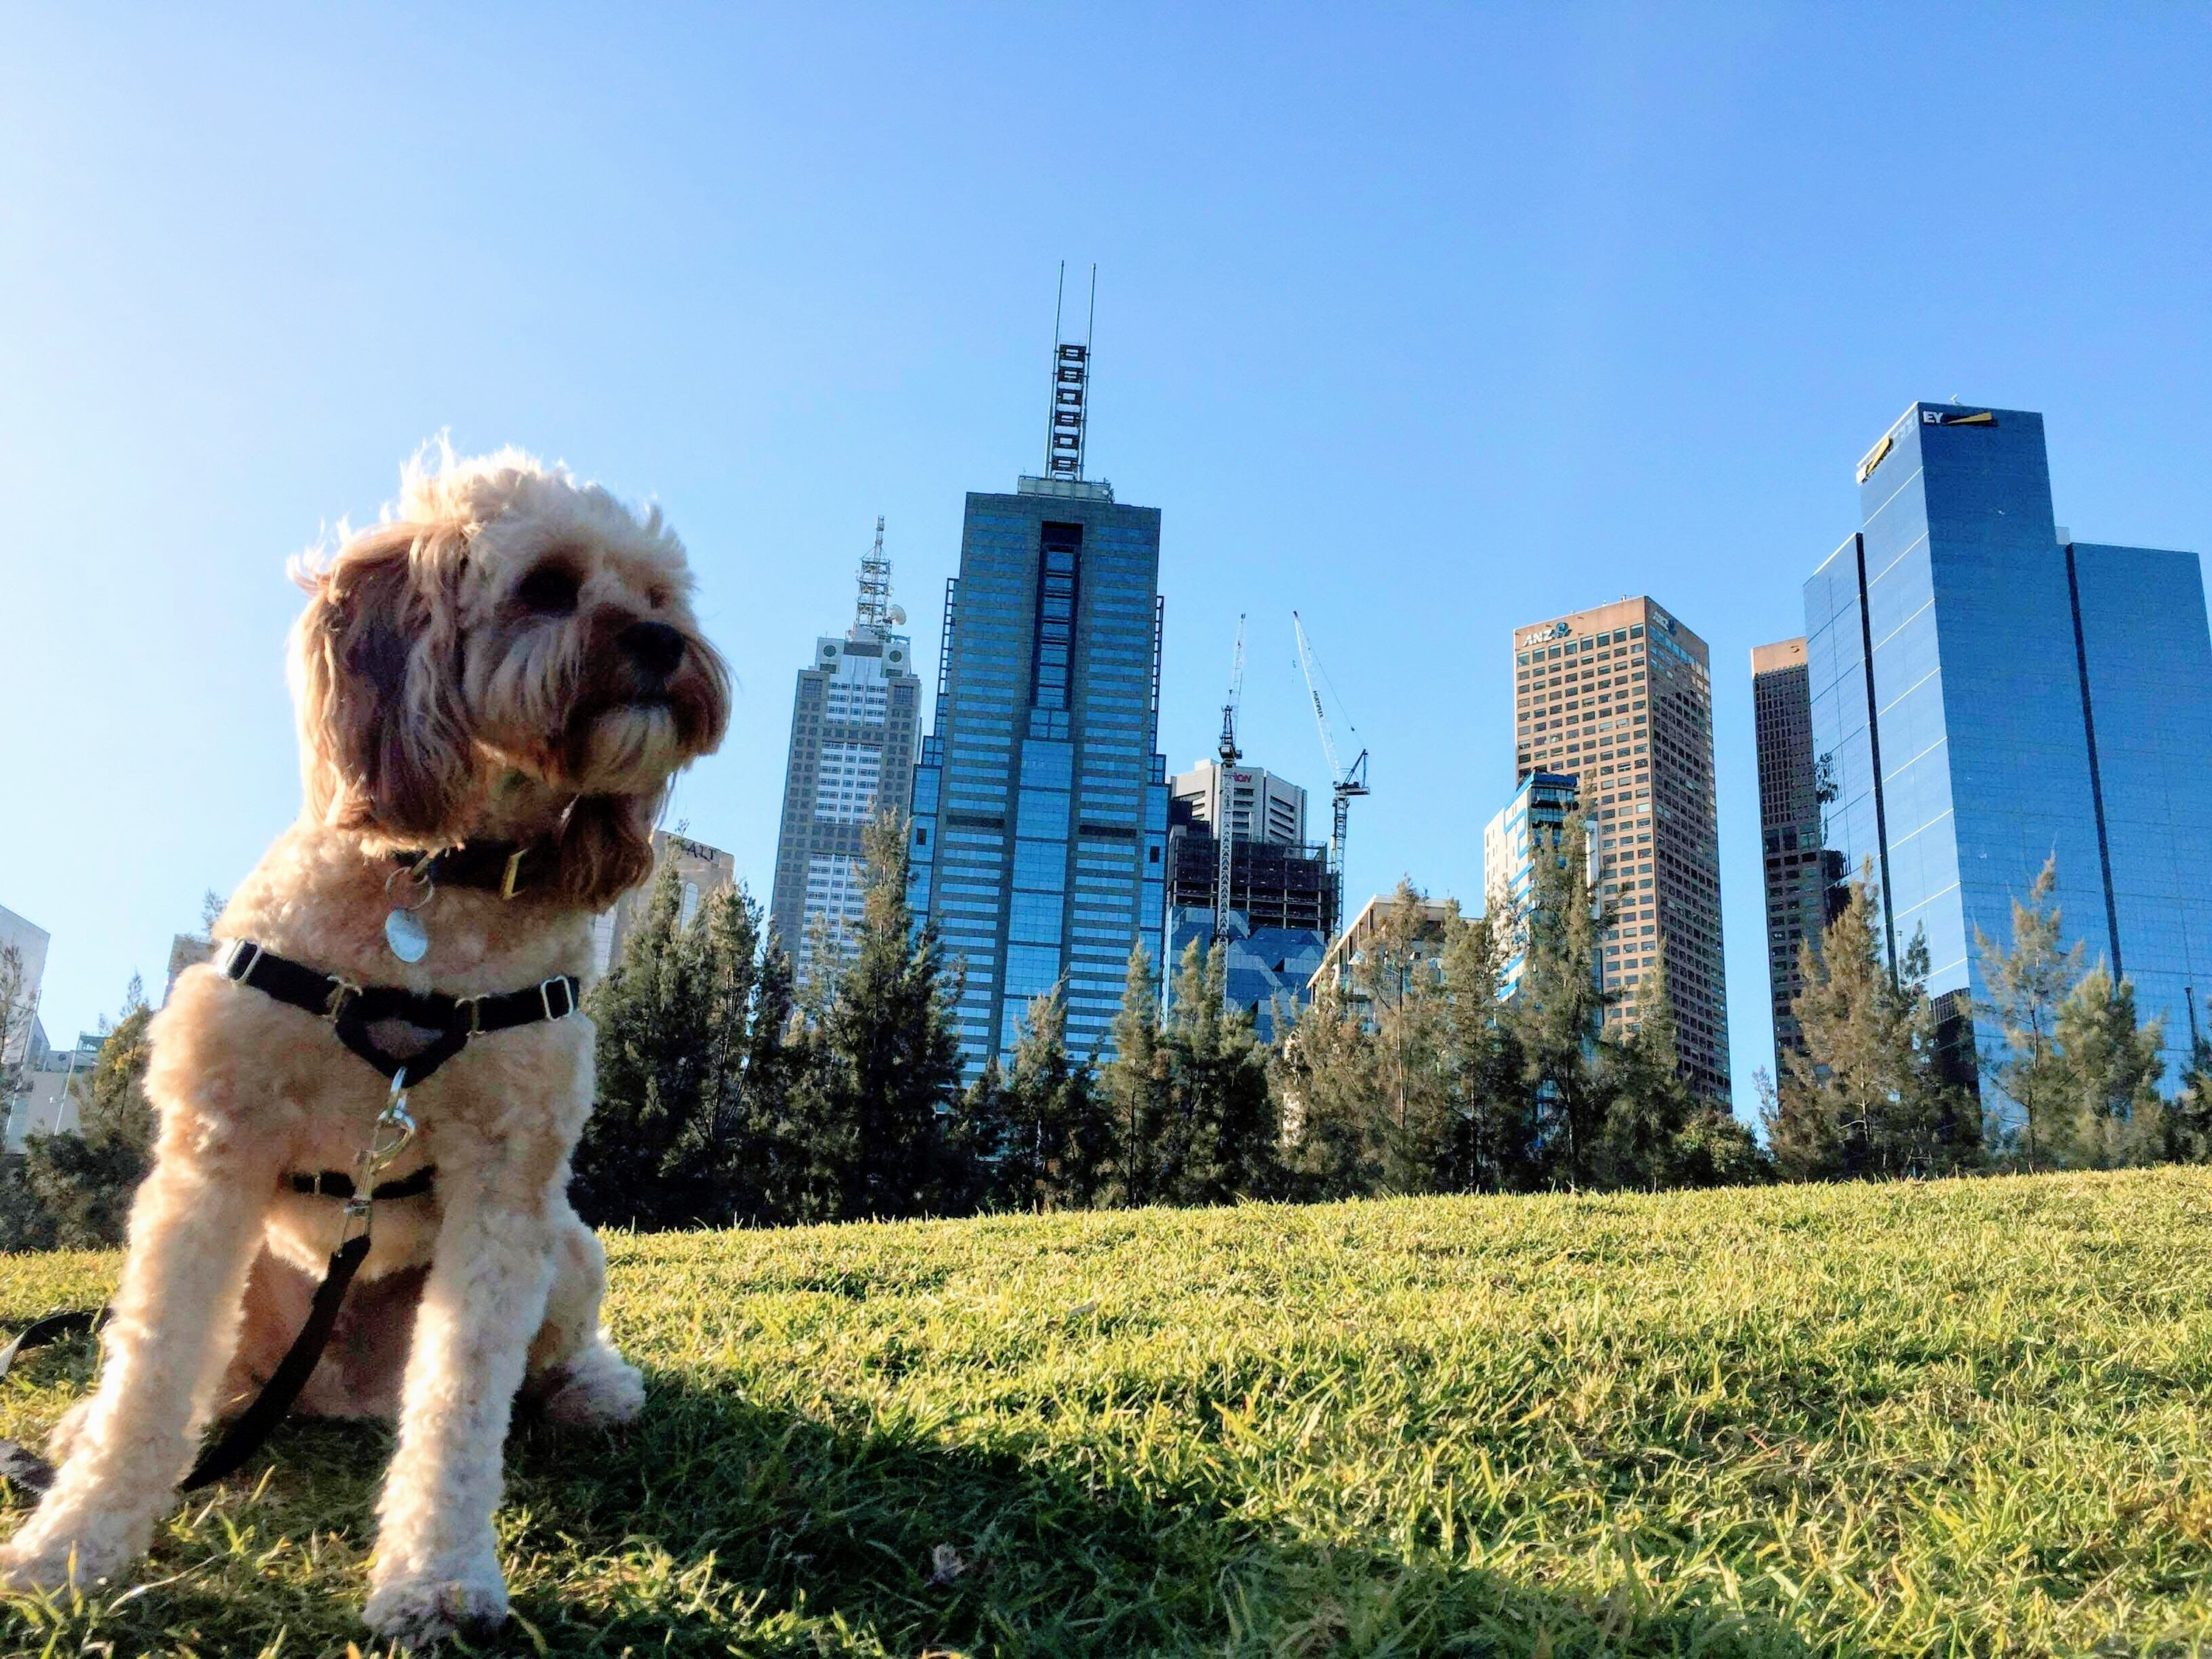 Win a weekend in the city with your best fur friend